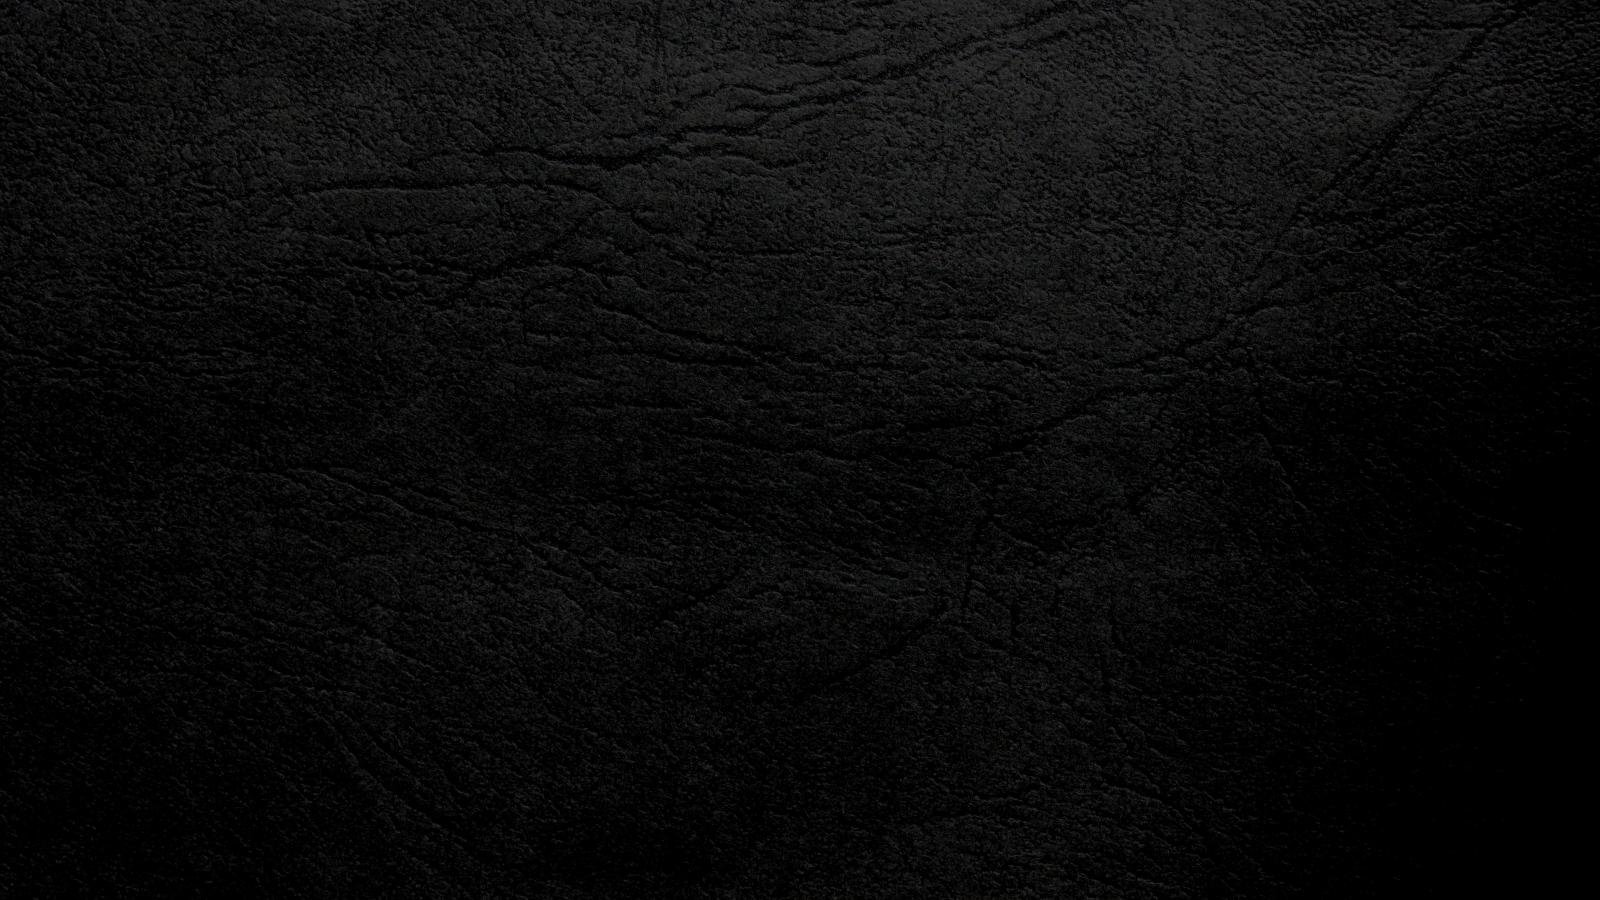 Iphone 8 Plus X Ray Wallpaper Texture Wallpaper And Hintergrund 1600x900 Id 474396